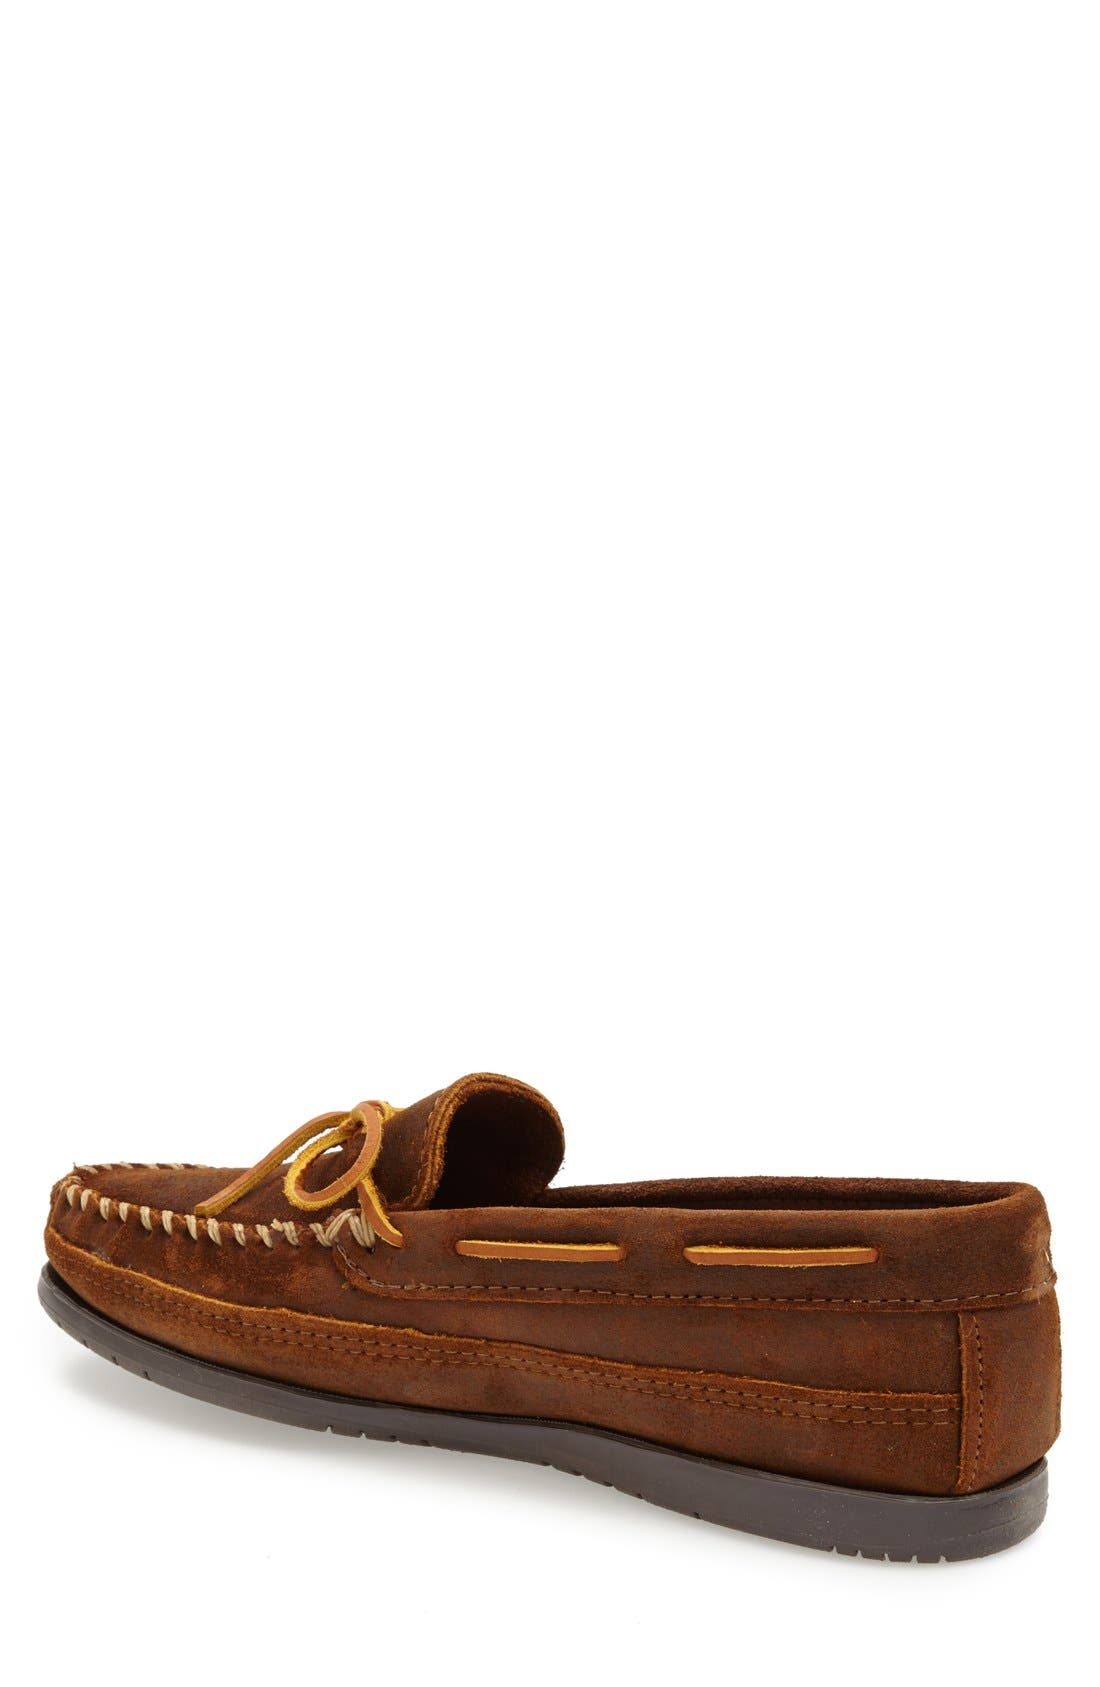 Leather Moccasin,                             Alternate thumbnail 2, color,                             212